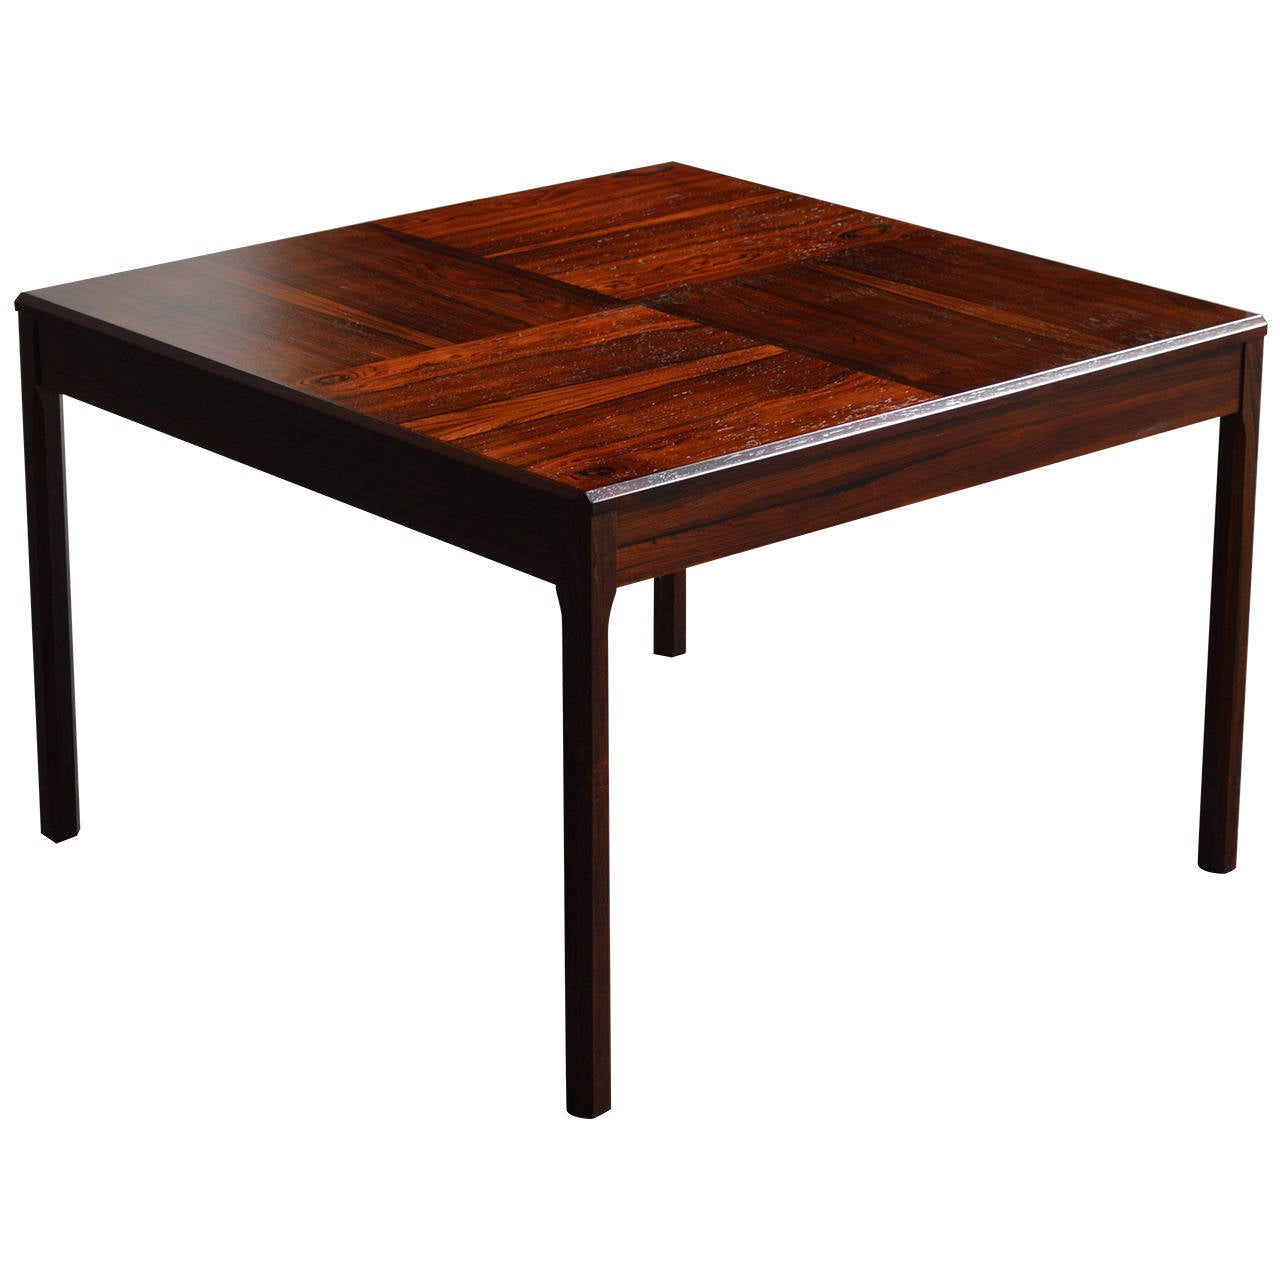 Danish Mid Century Modern Occasional Side Coffee Table Rosewood: Swedish Midcentury Coffee Or Side Table In Rosewood With